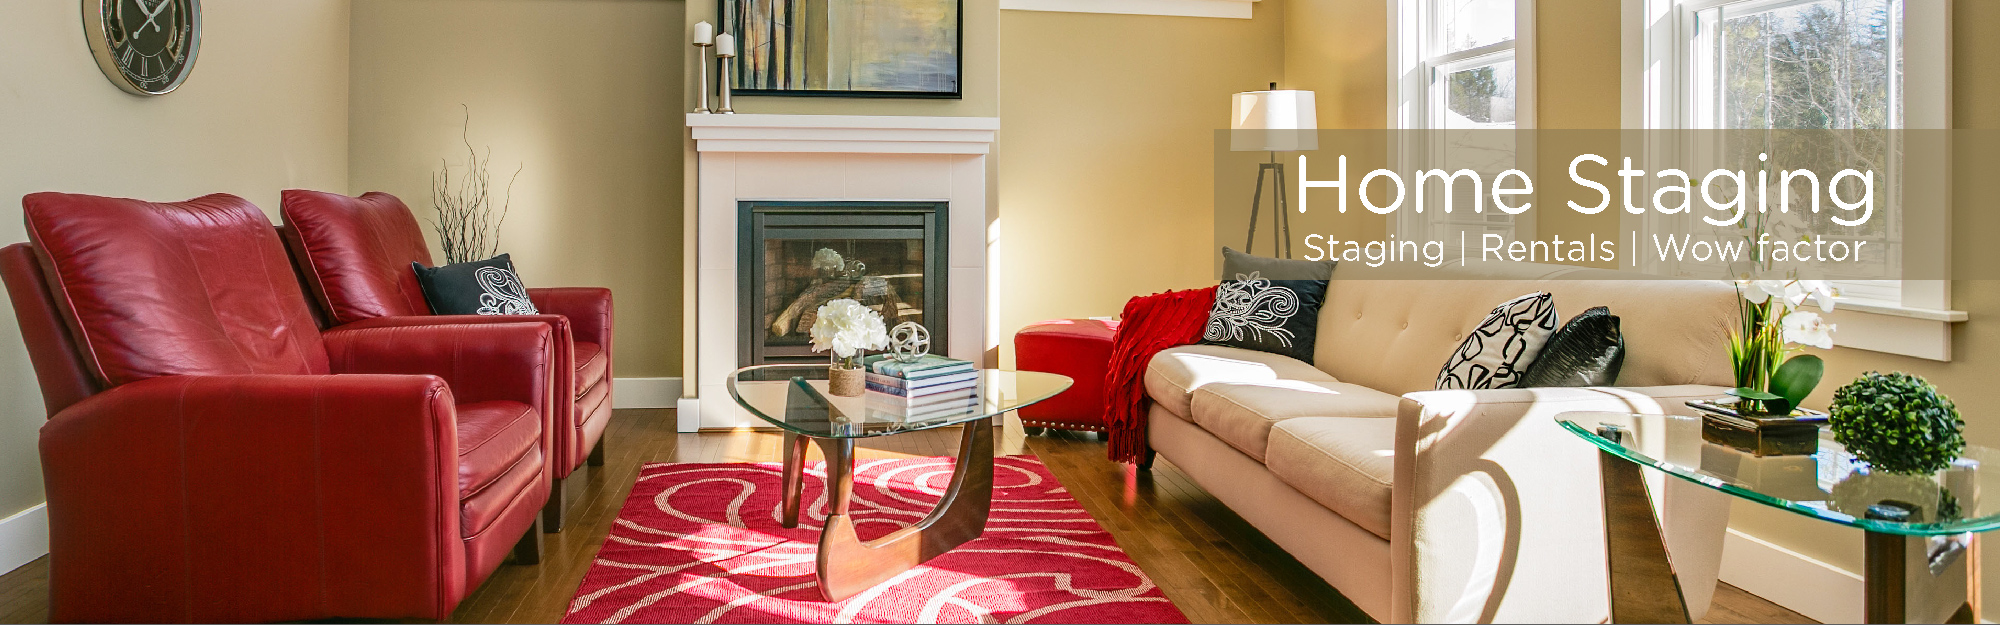 home staging services halifax home staging dartmouth. Black Bedroom Furniture Sets. Home Design Ideas